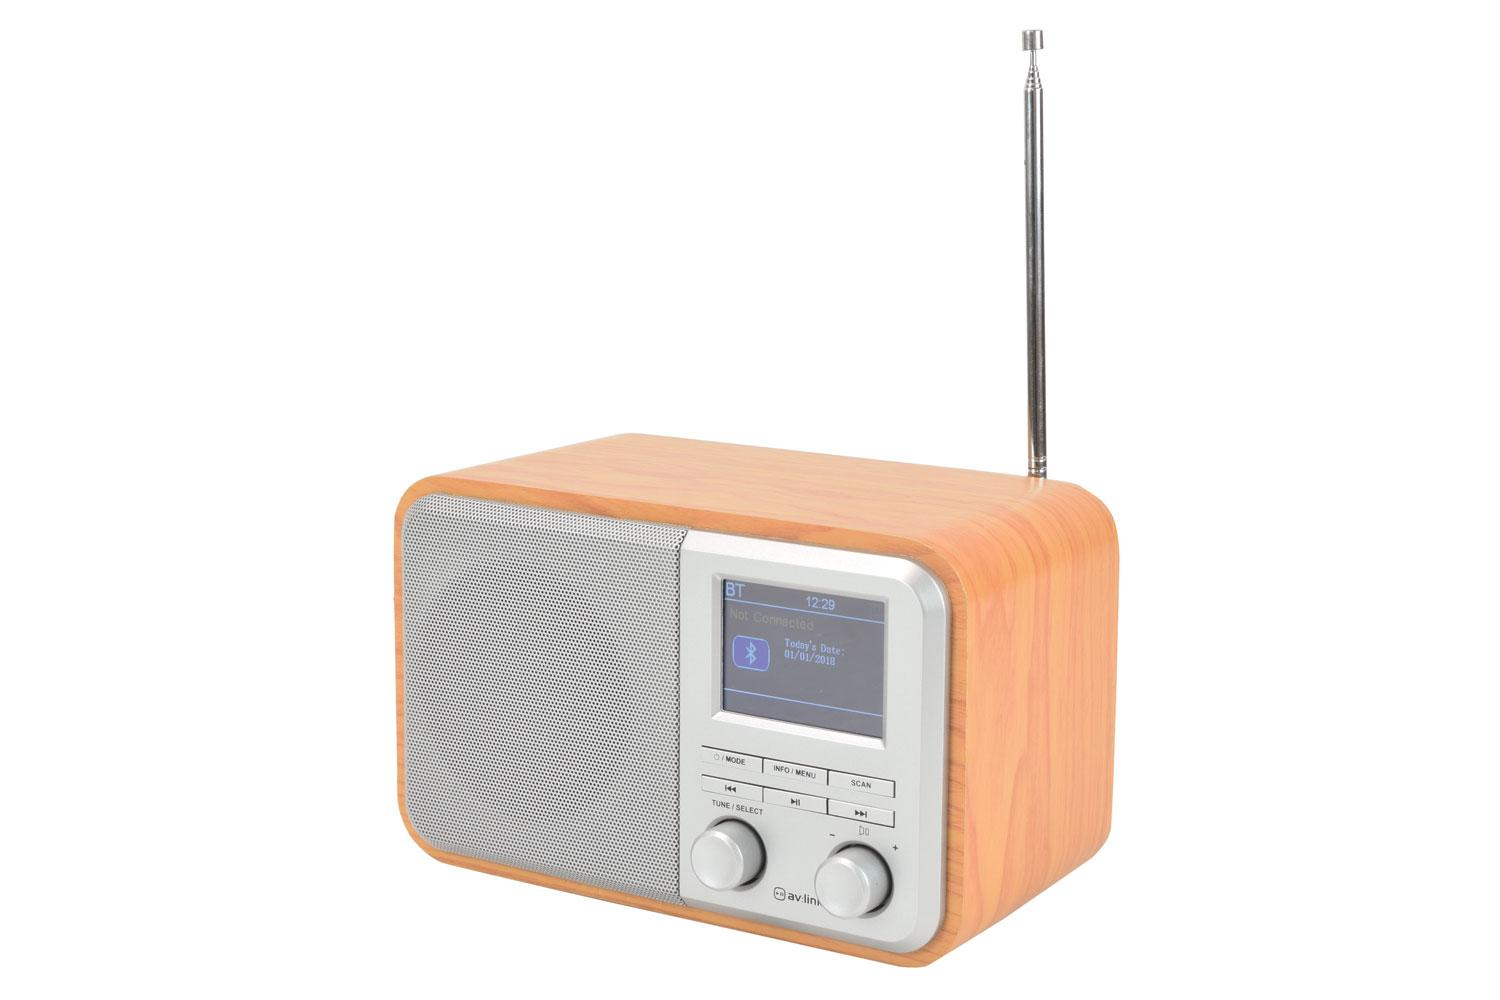 Buy Av Link Rechargeable Dab Radio With Bluetooth